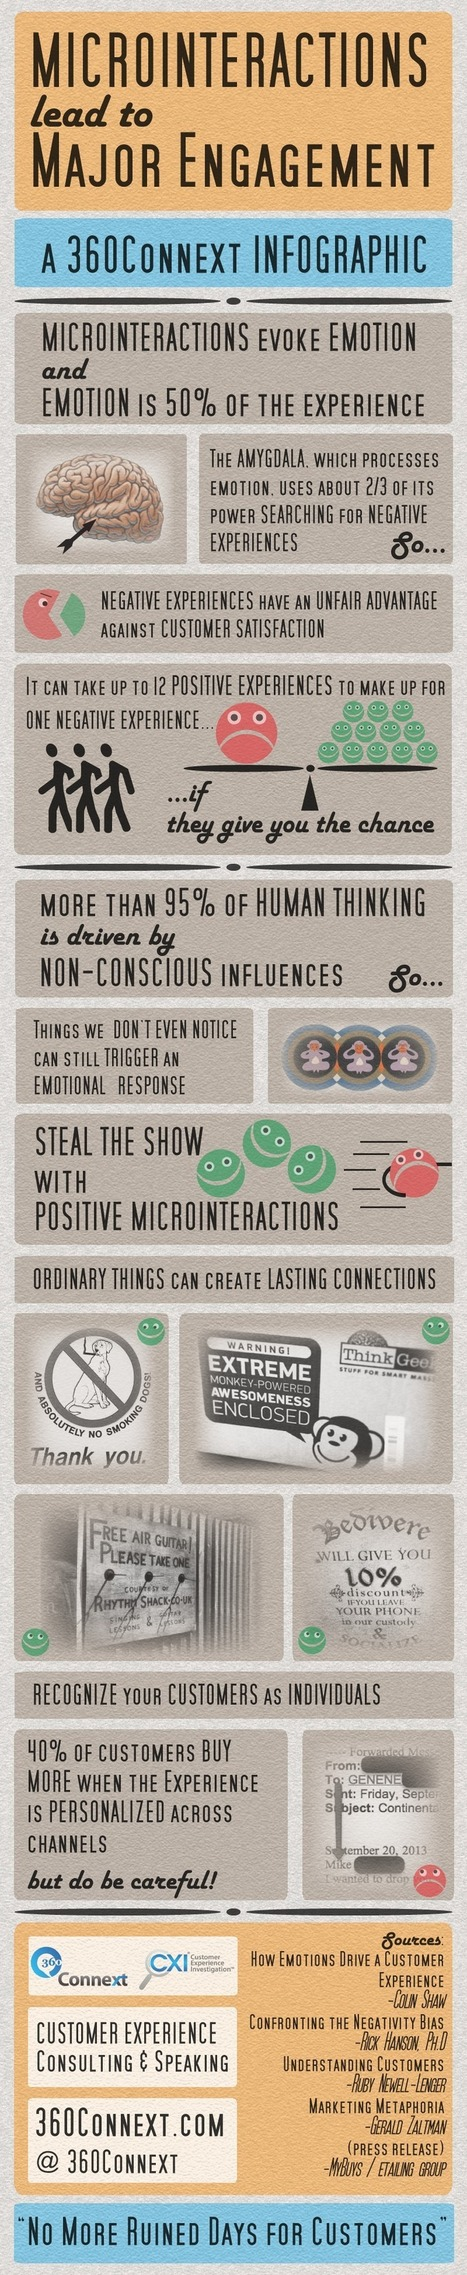 Emotion IS The Experience: Microinteractions Infographic - Business 2 Community | Selfie. Mai più senza? | Scoop.it